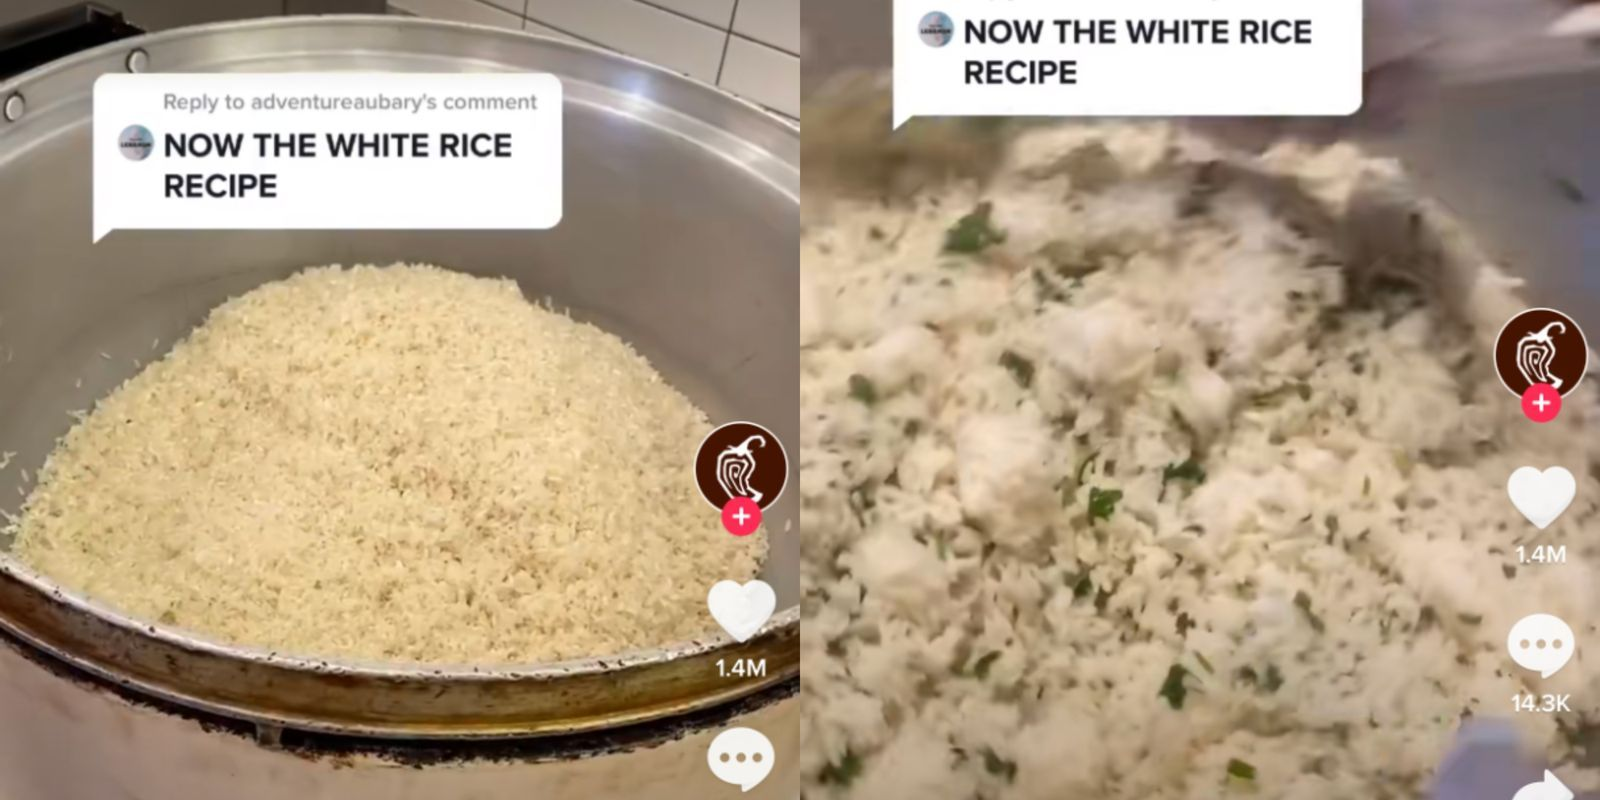 Chipotle Shared The Recipe For Its White Rice On Tiktok And It S Insanely Easy To Make At Home Recipes Corn Salsa Recipe White Rice Recipes